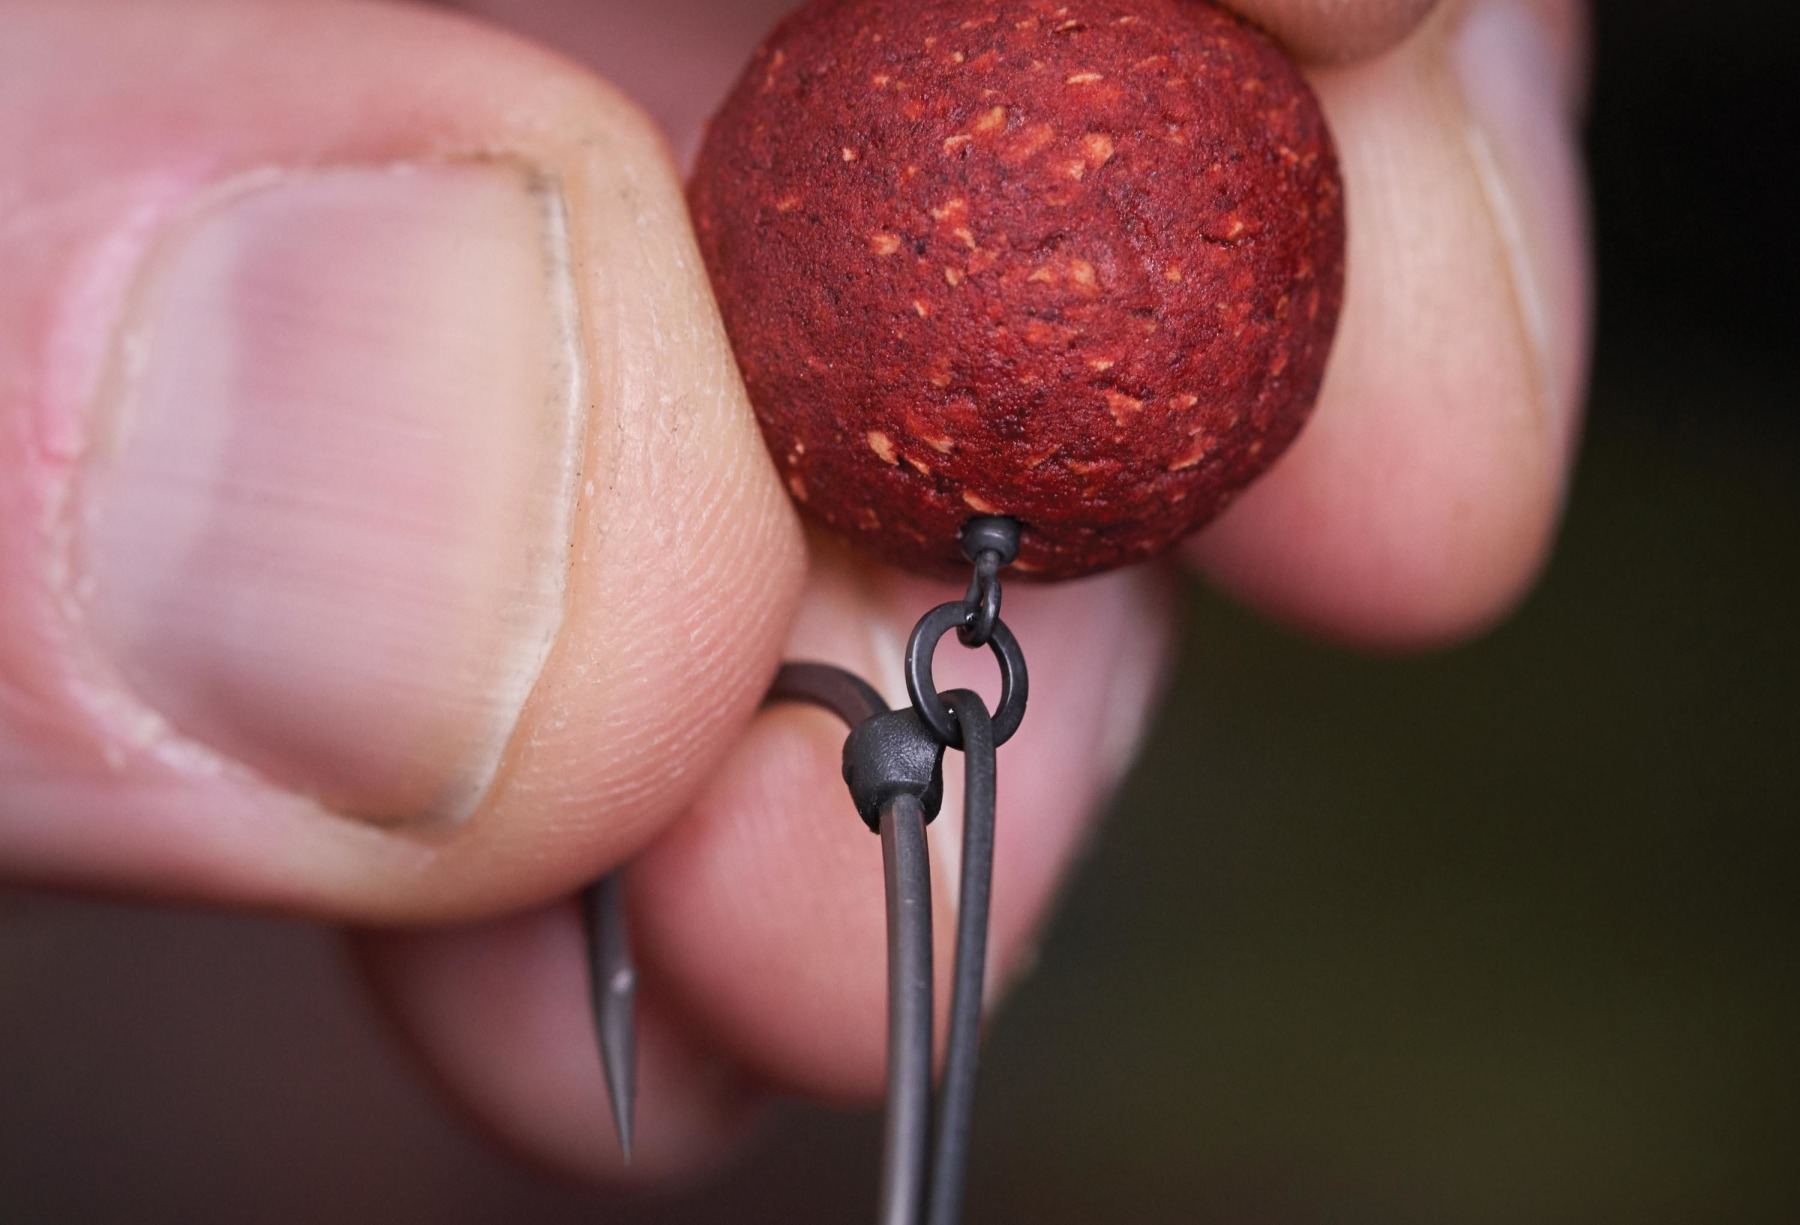 For cork-dust wafters that I want to 'hover' above the hook, a hook ring swivel works best